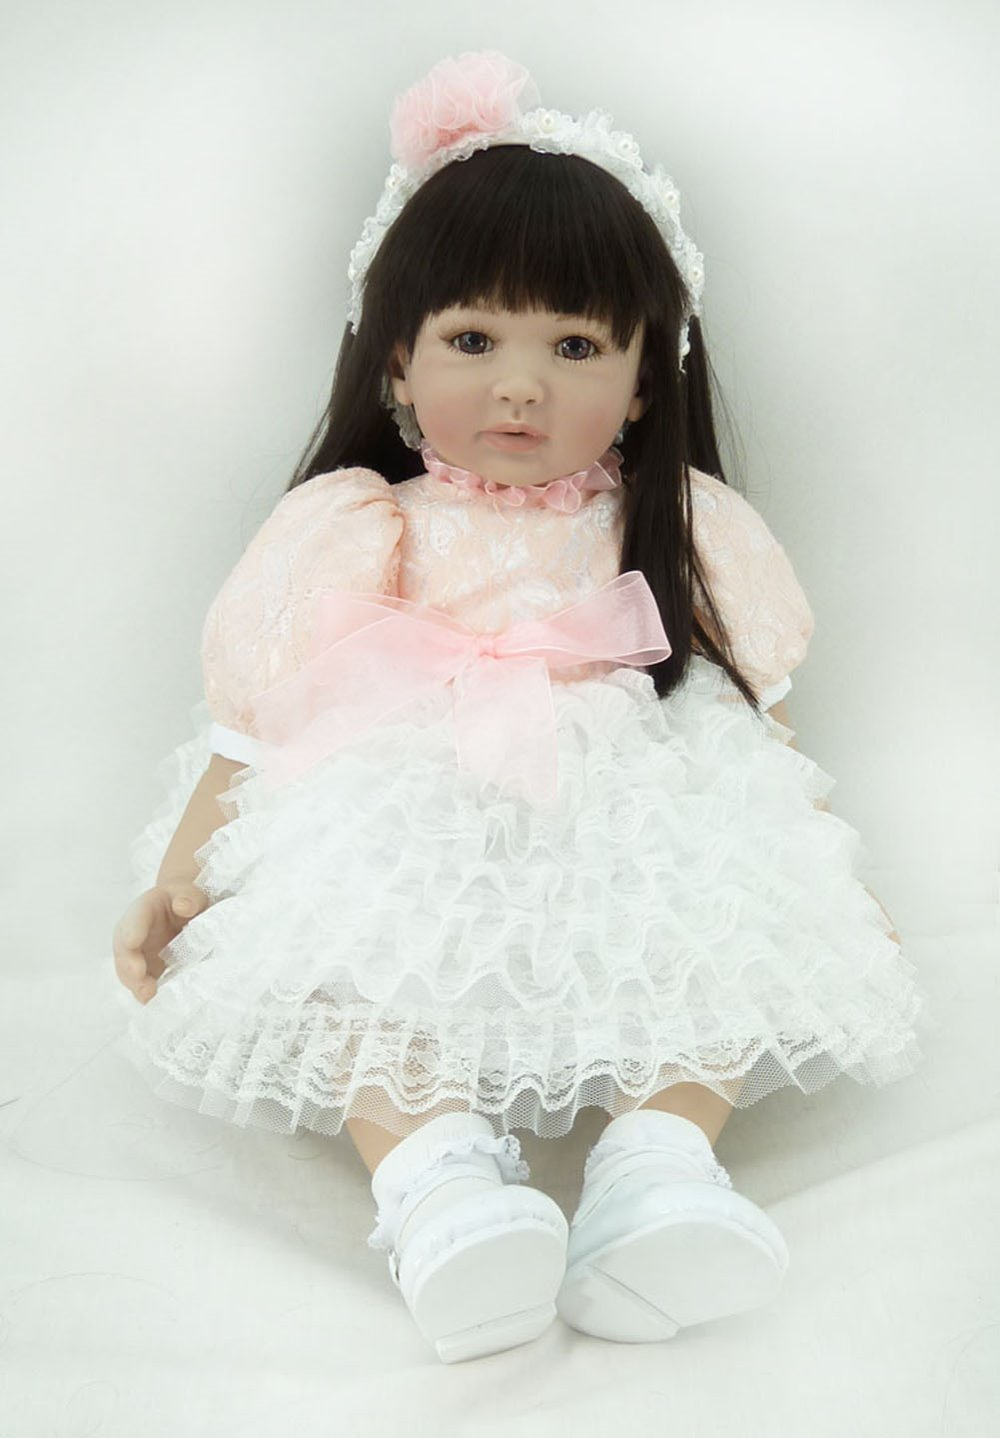 22inch 55cm Silicone baby reborn dolls, lifelike doll reborn babies toys for girl princess gift brinquedos  Children's toys